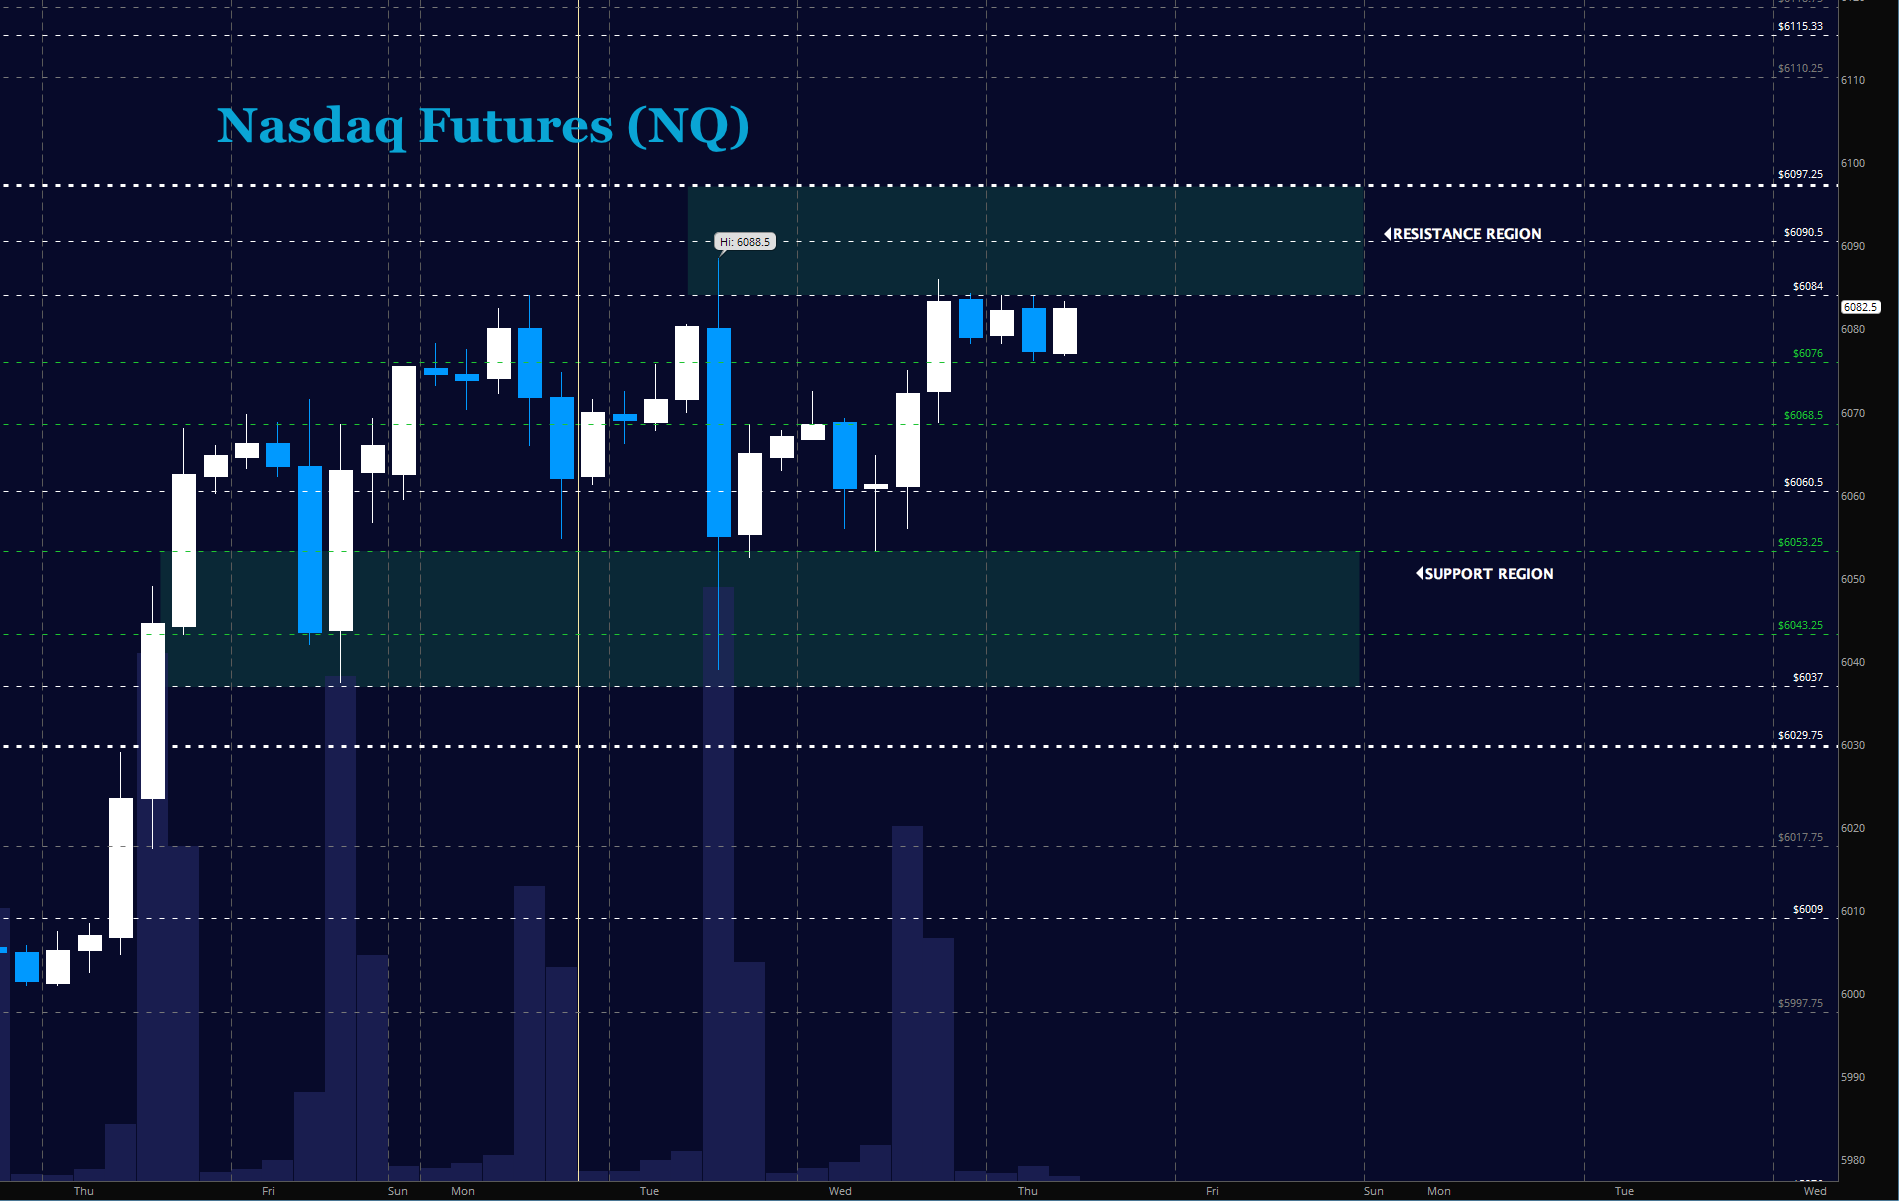 nasdaq futures trading price pivots targets_october 12